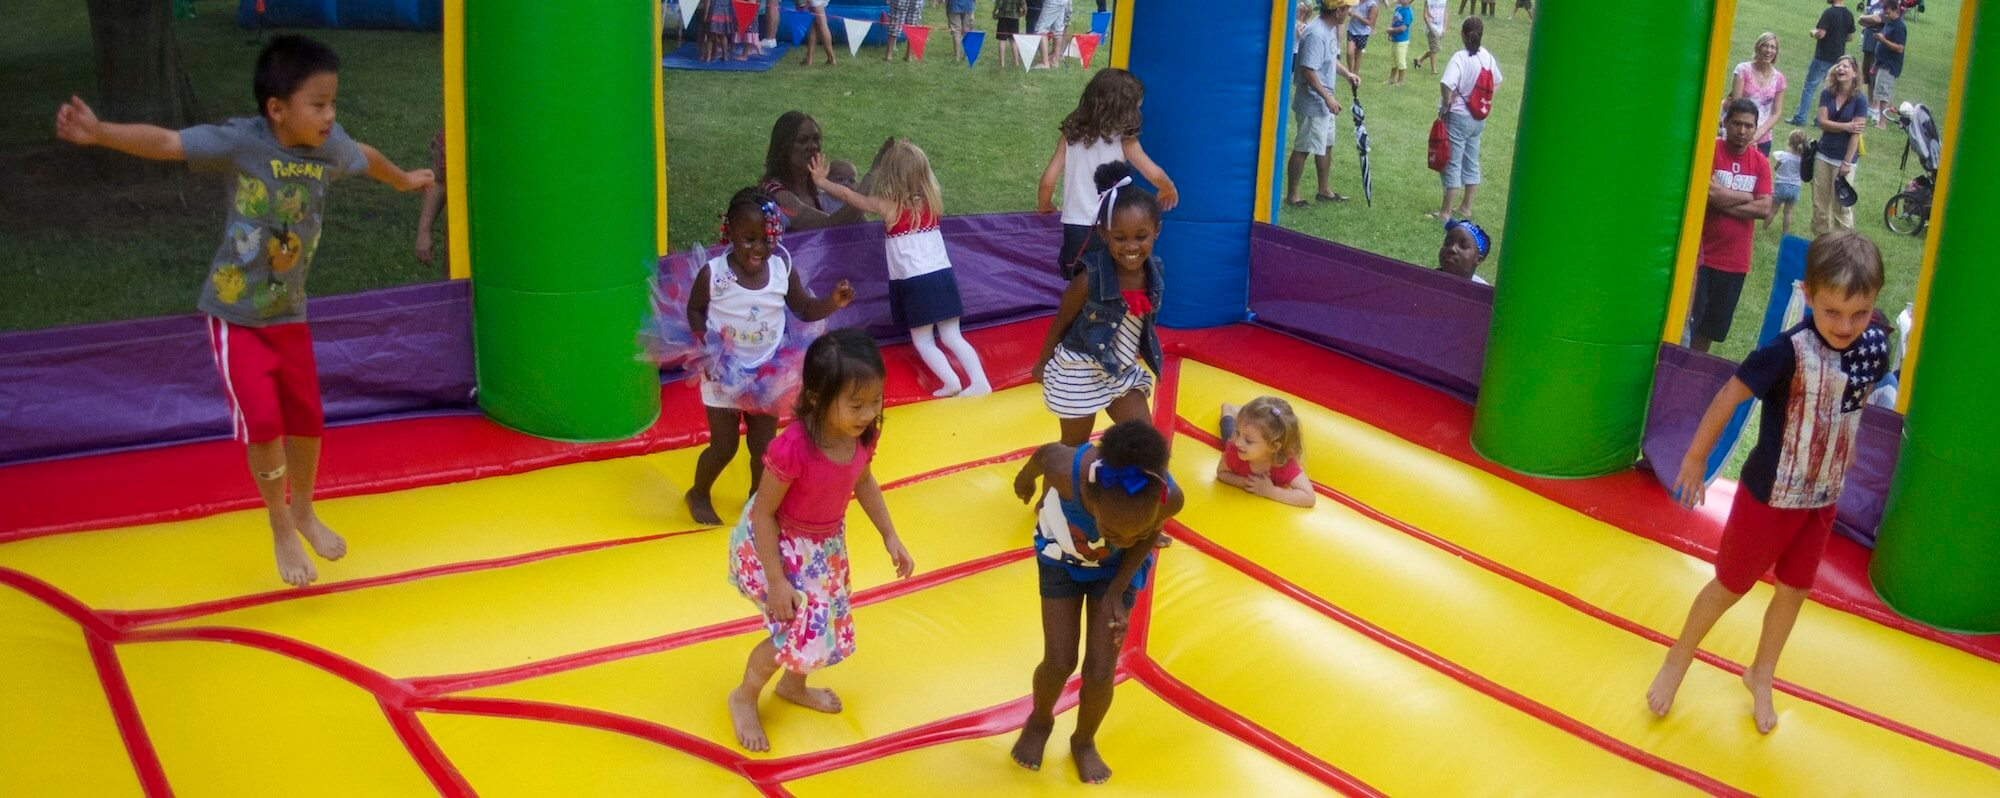 Top Kids Birthday Party Ideas Columbus Ohio